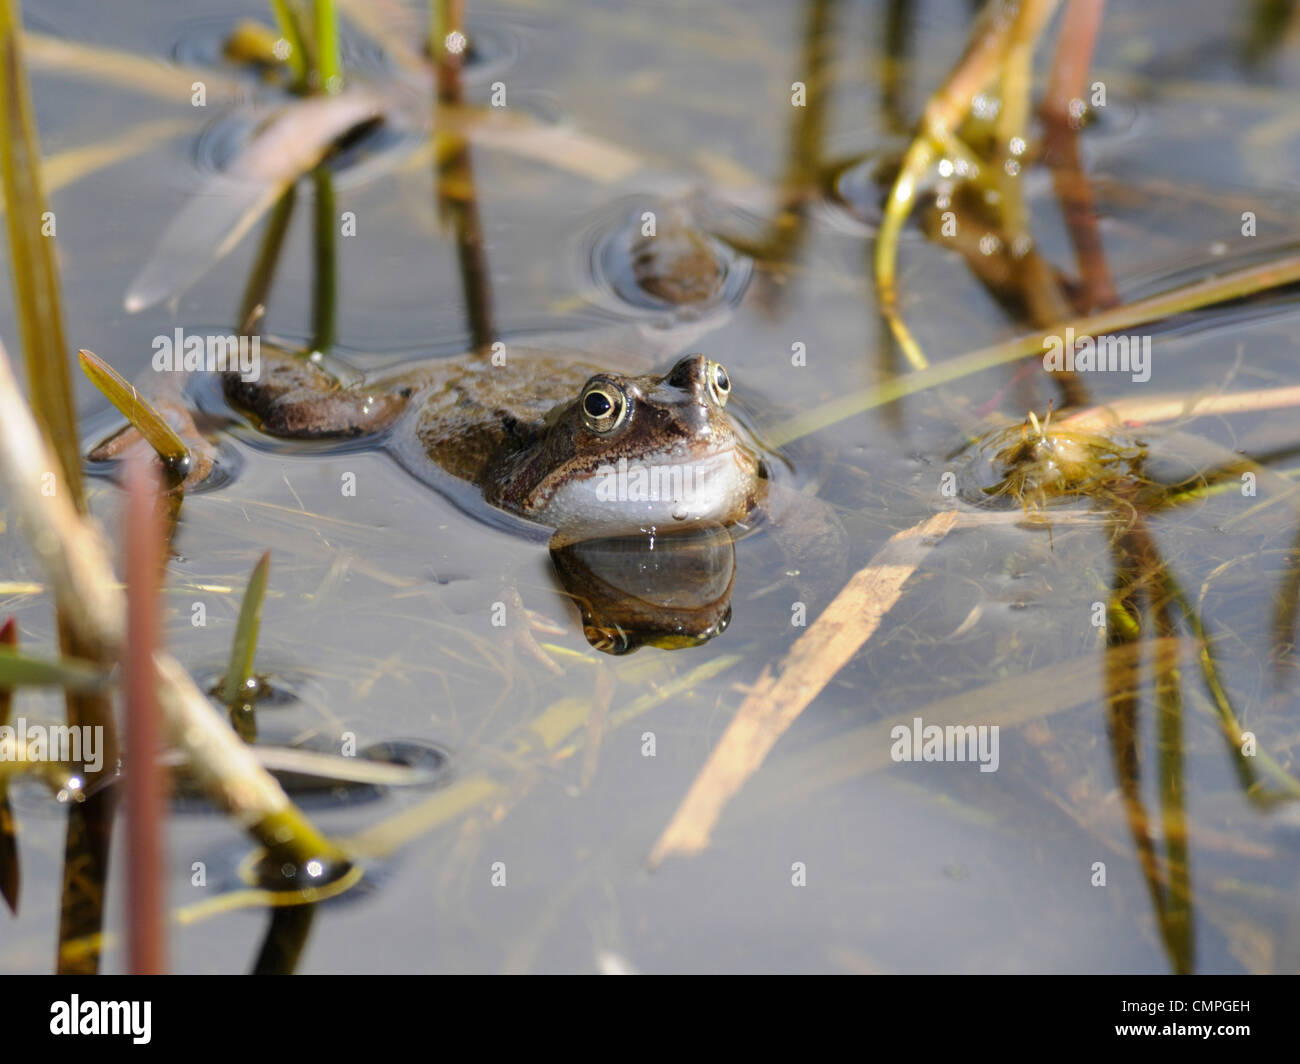 A spawning common frog ( Rana temporaria ) - Stock Image